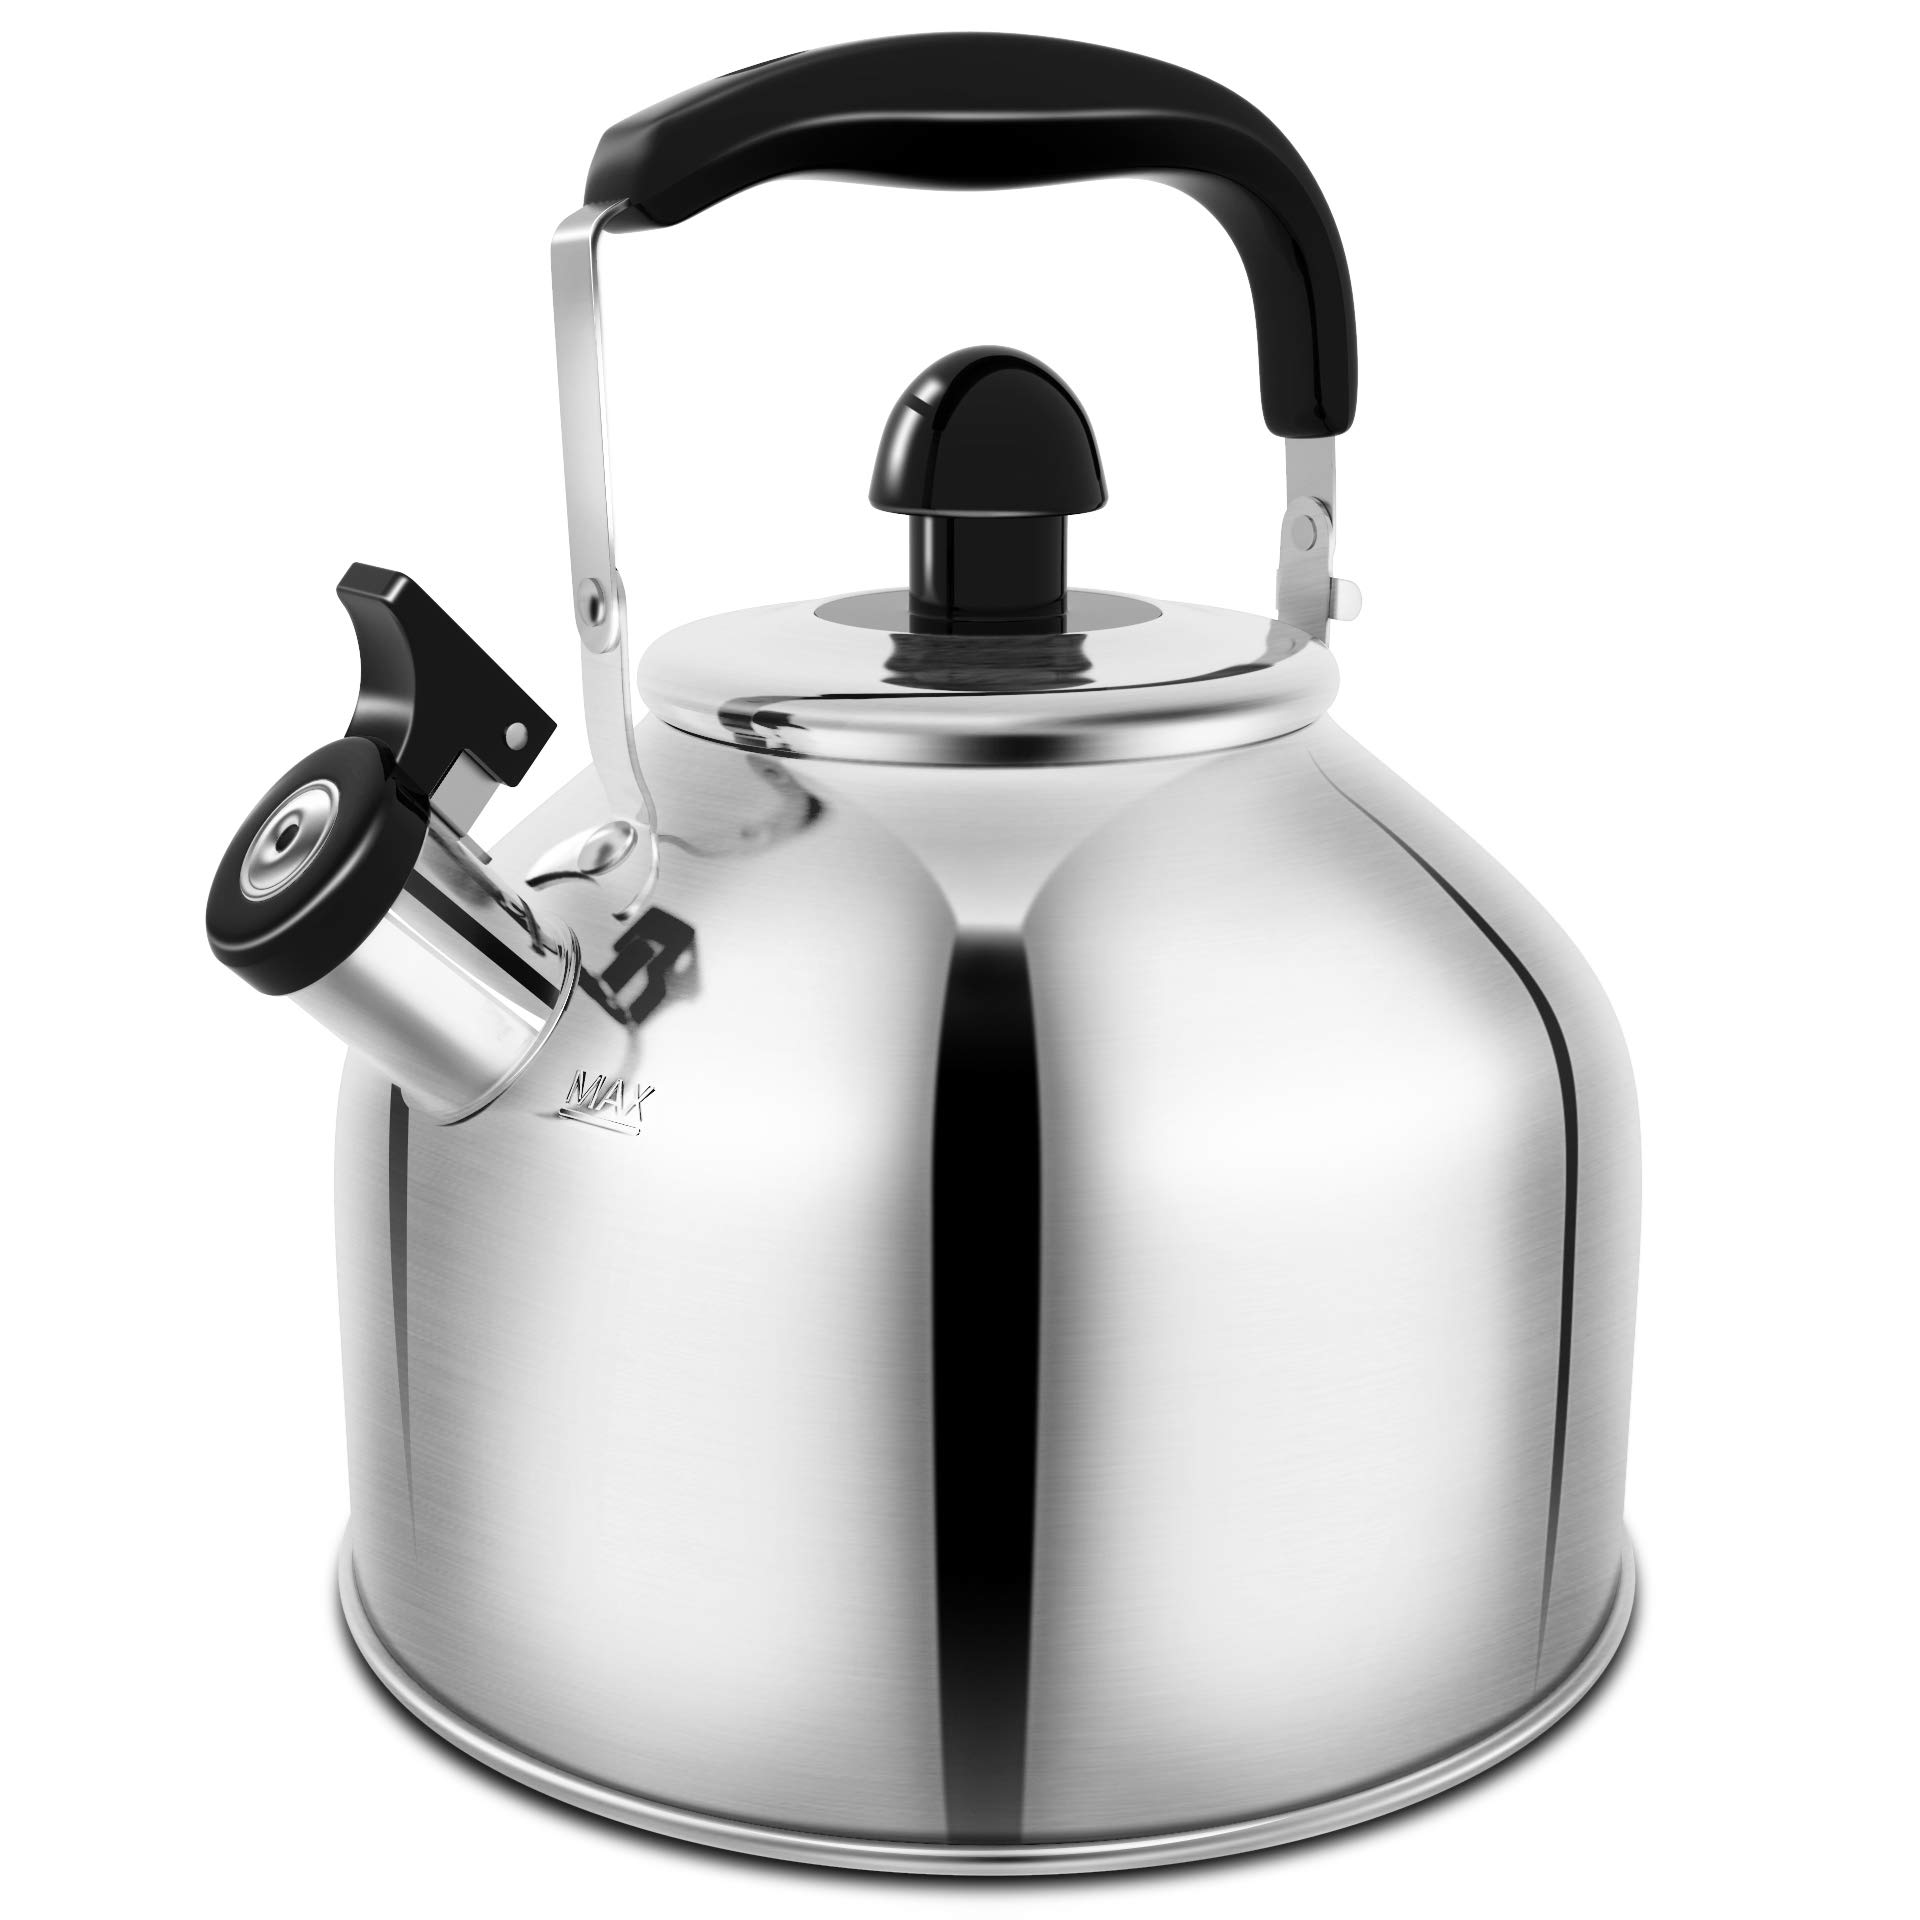 Tea Kettle Stove top Whistling Teapot, Stainless Steel Teakettle with Fast Boiling Base, 3.9 Quart by AMFOCUS